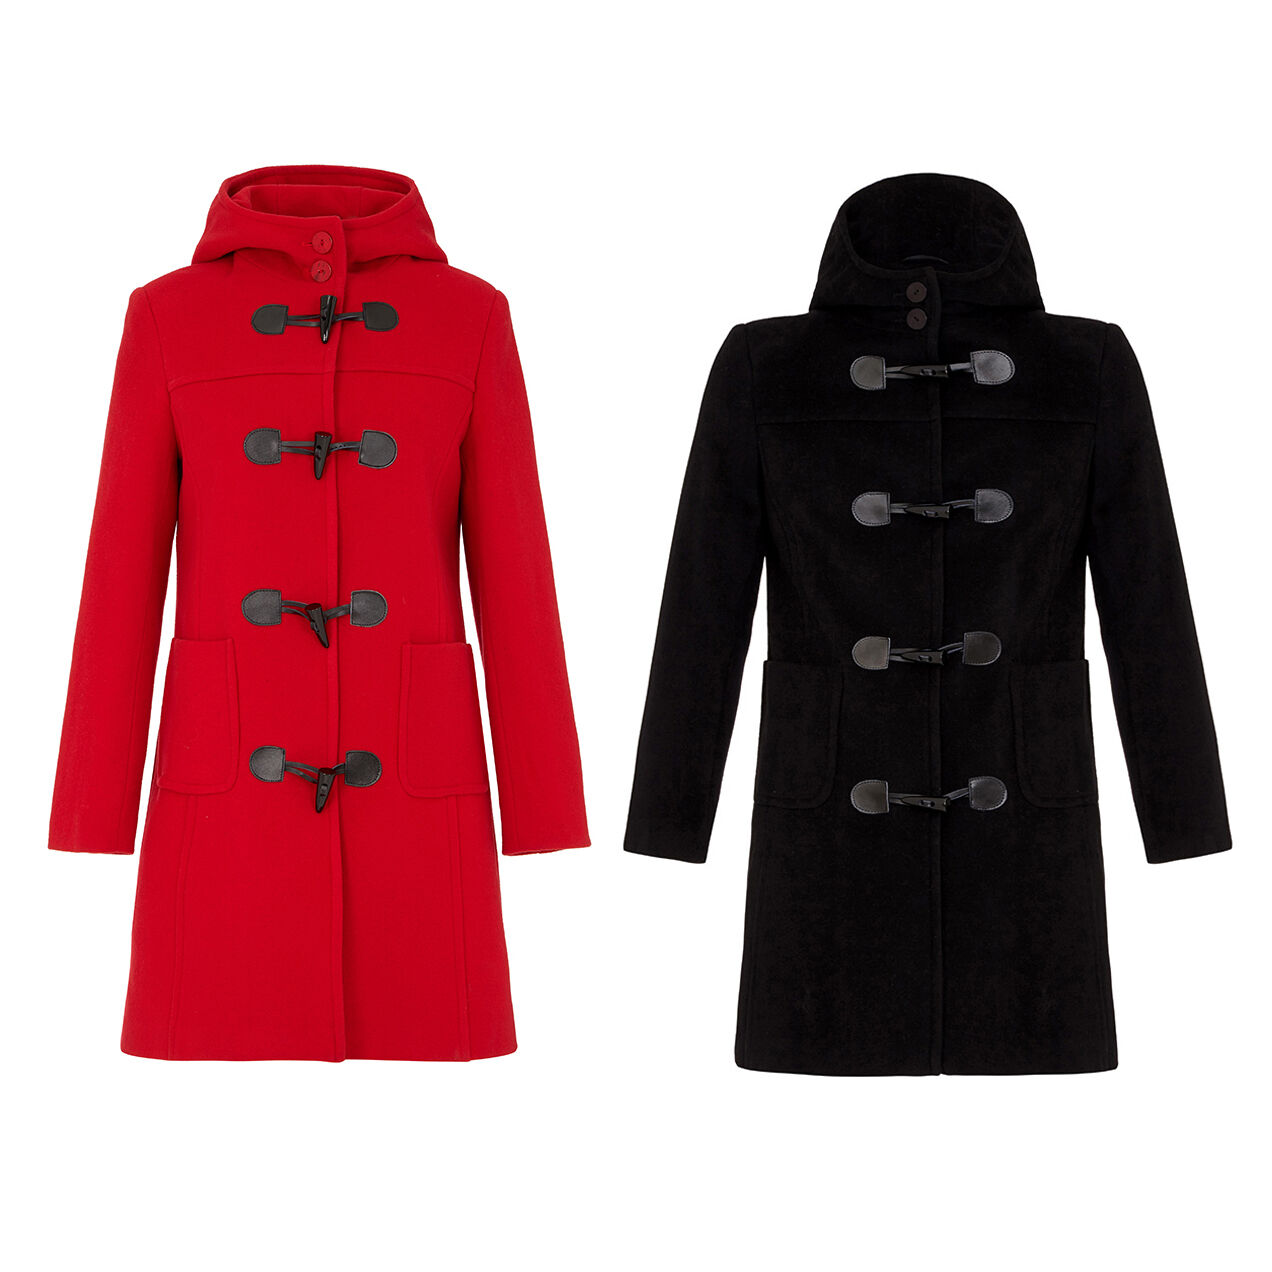 NEW LADIES DUFFLE COAT - Luxury Cashmere & Wool Made in England